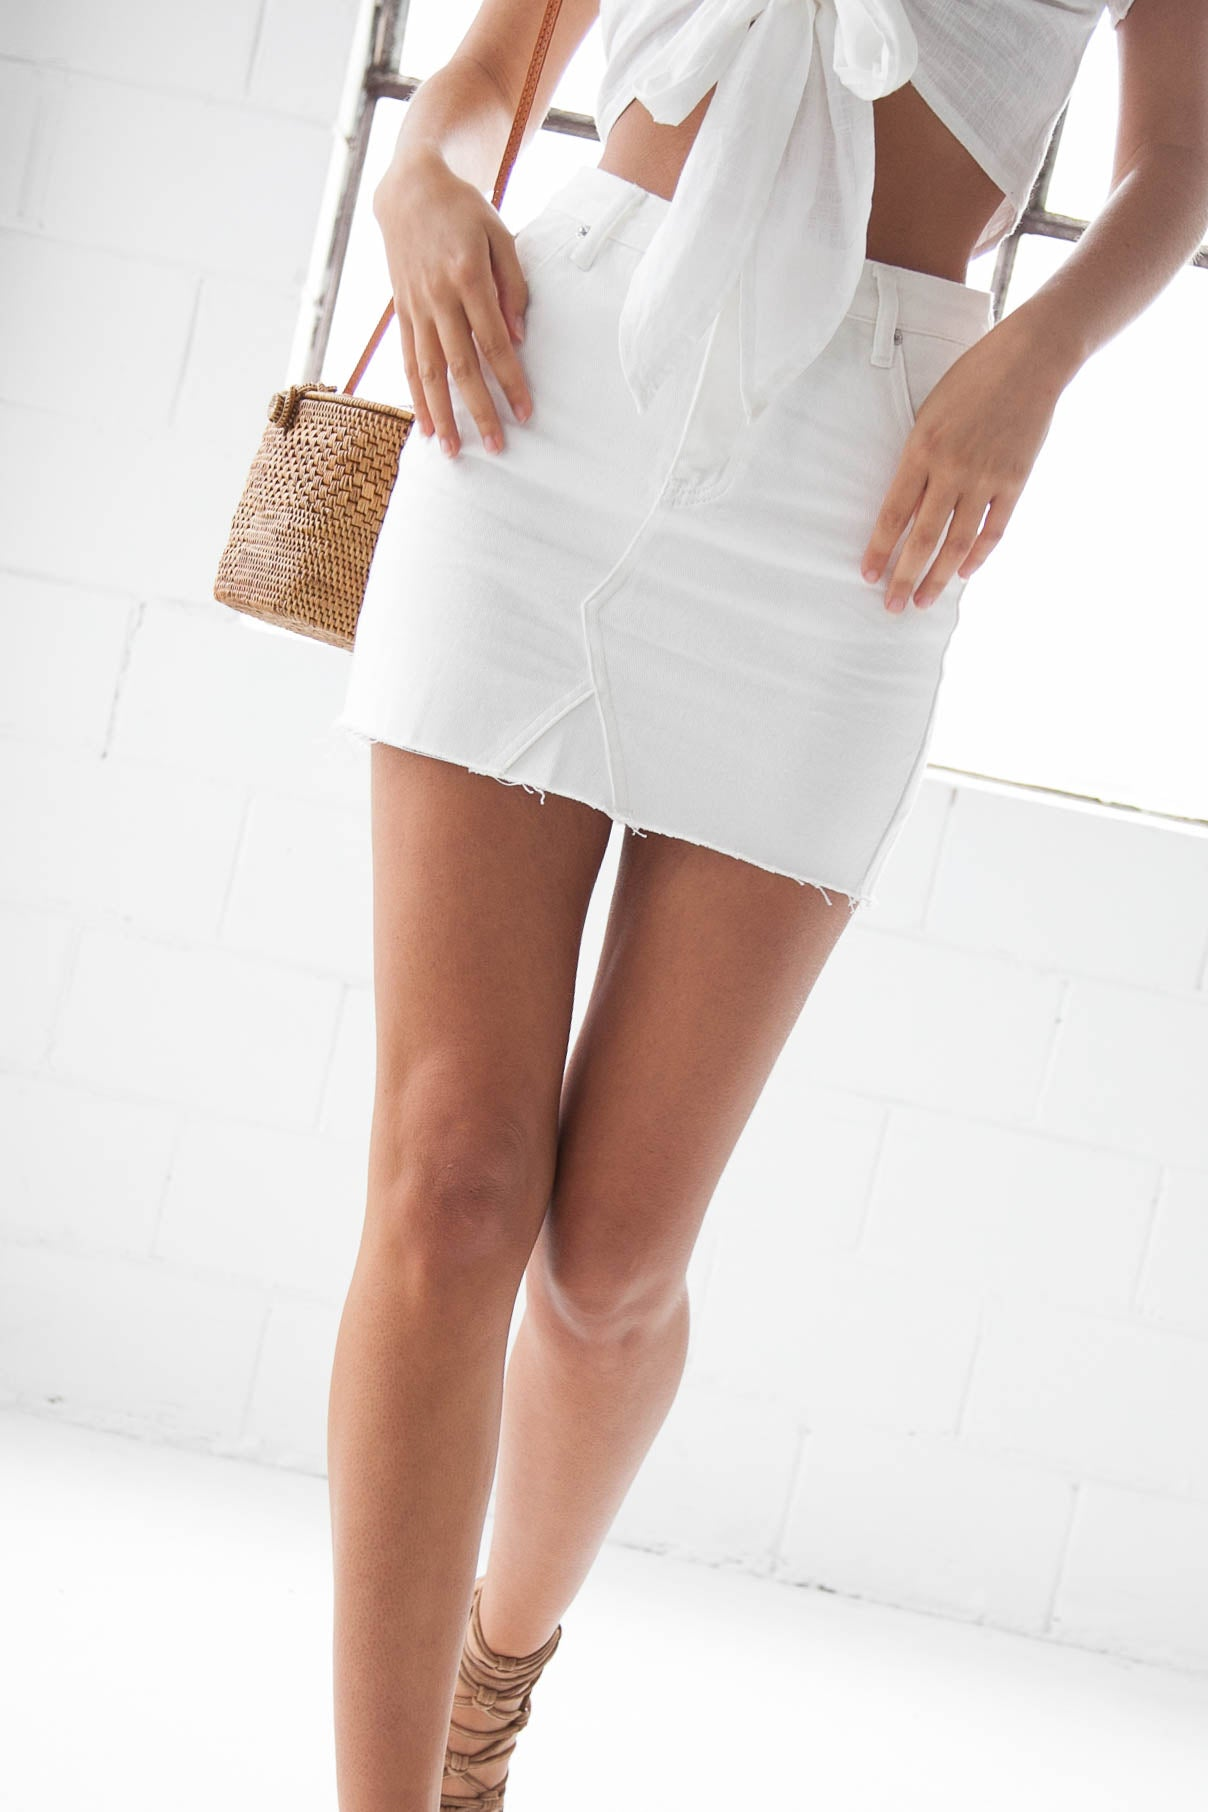 Elsa Skirt - White Denim - Style Addict